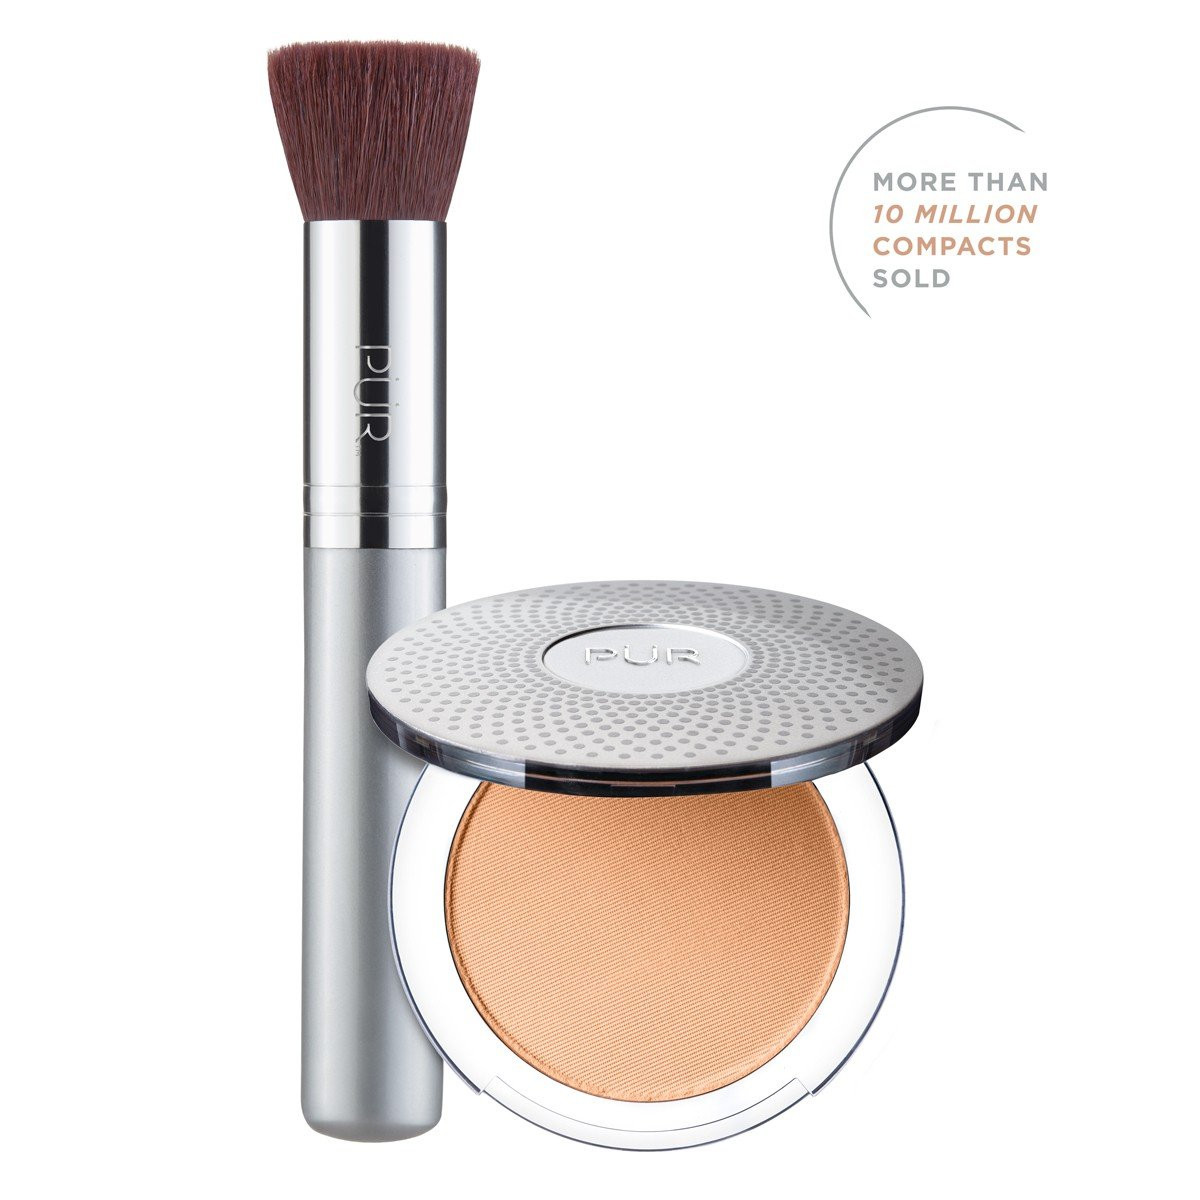 TRY PÜR! 4-in-1 Pressed Mineral Makeup and Brush Kit in Medium Tan